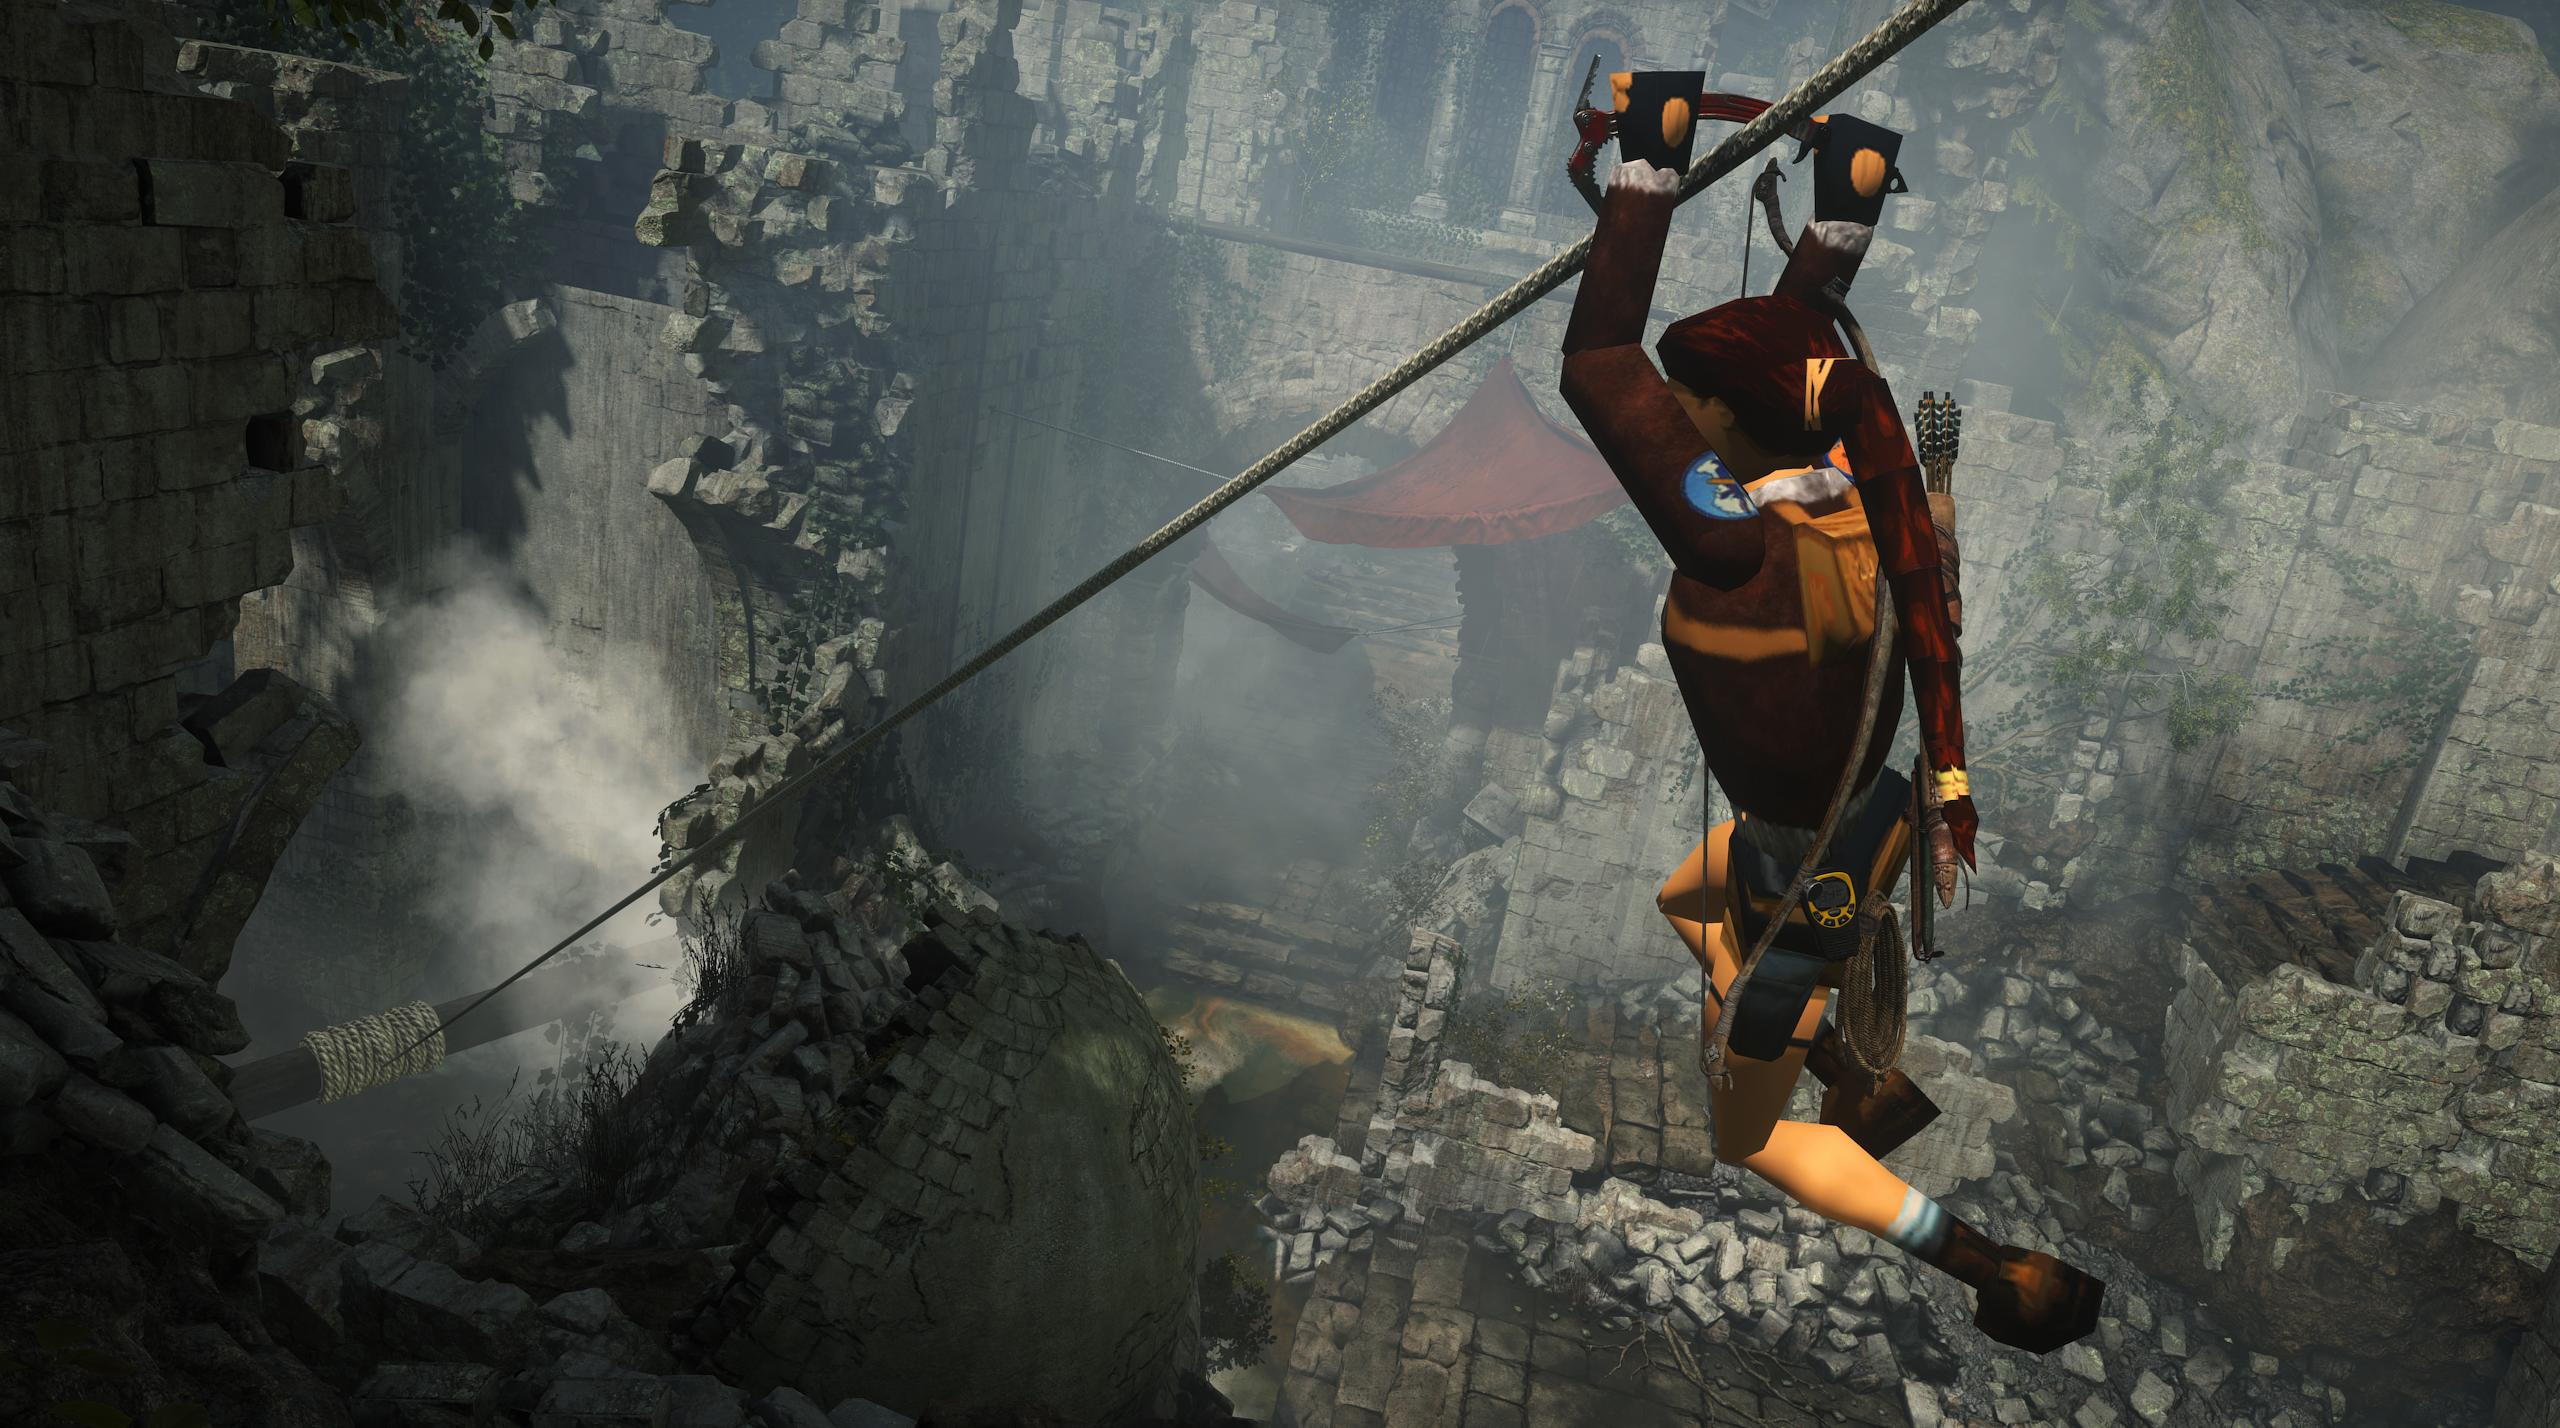 Rise-of-the-Tomb-Raider_2016_08-17-16_009